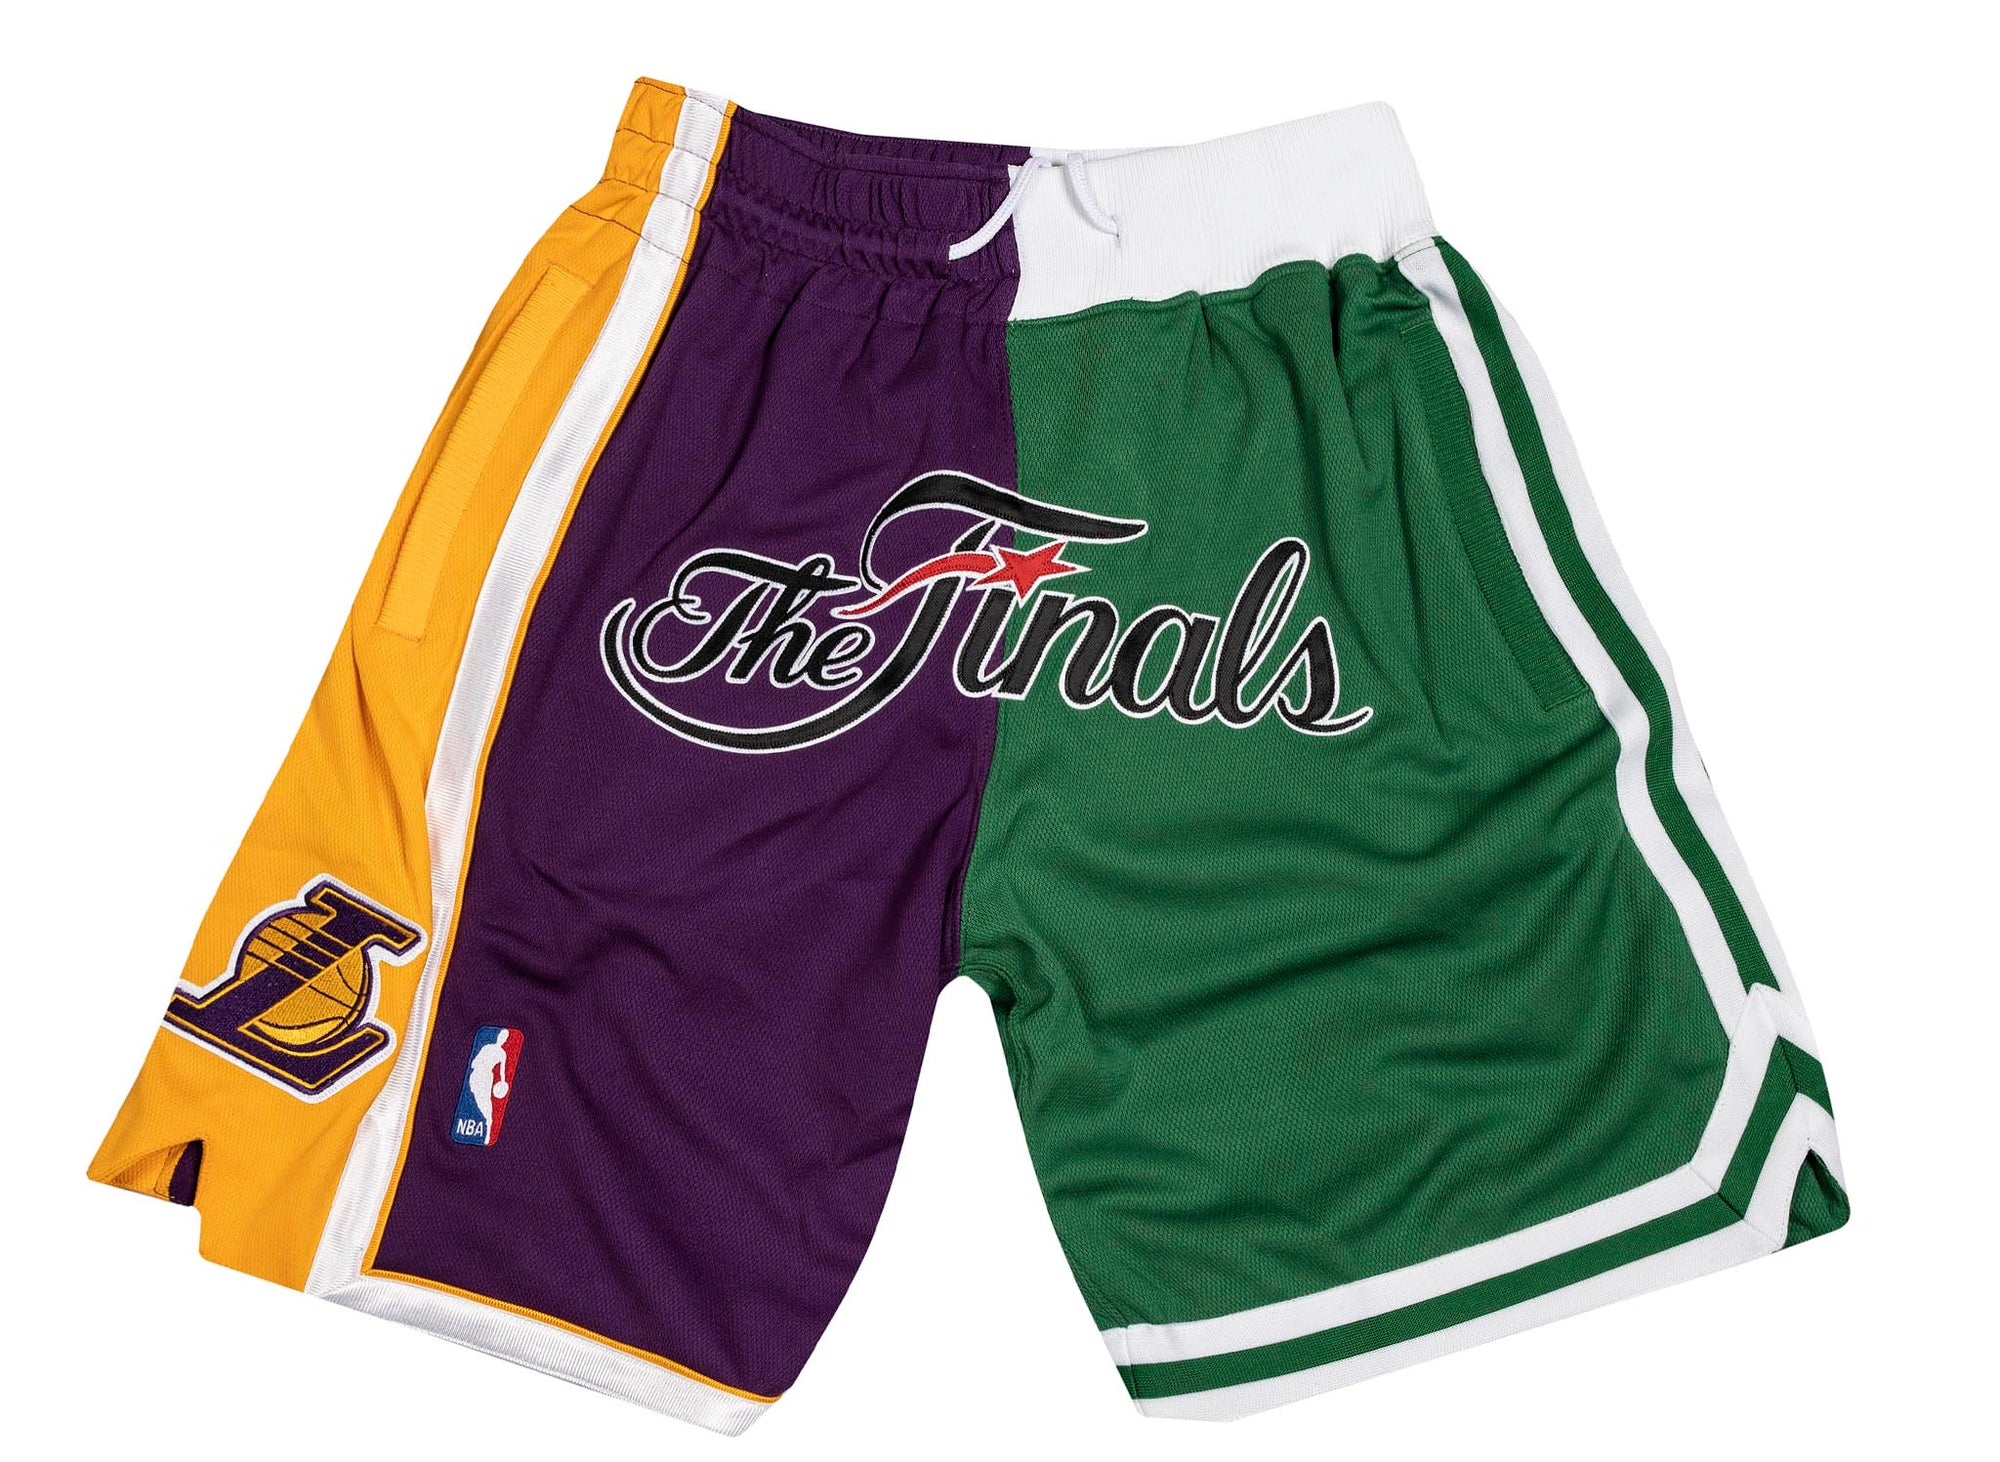 Mitchell and Ness x JUST DON  NBA FINALS LAKERS CELTICS 2008